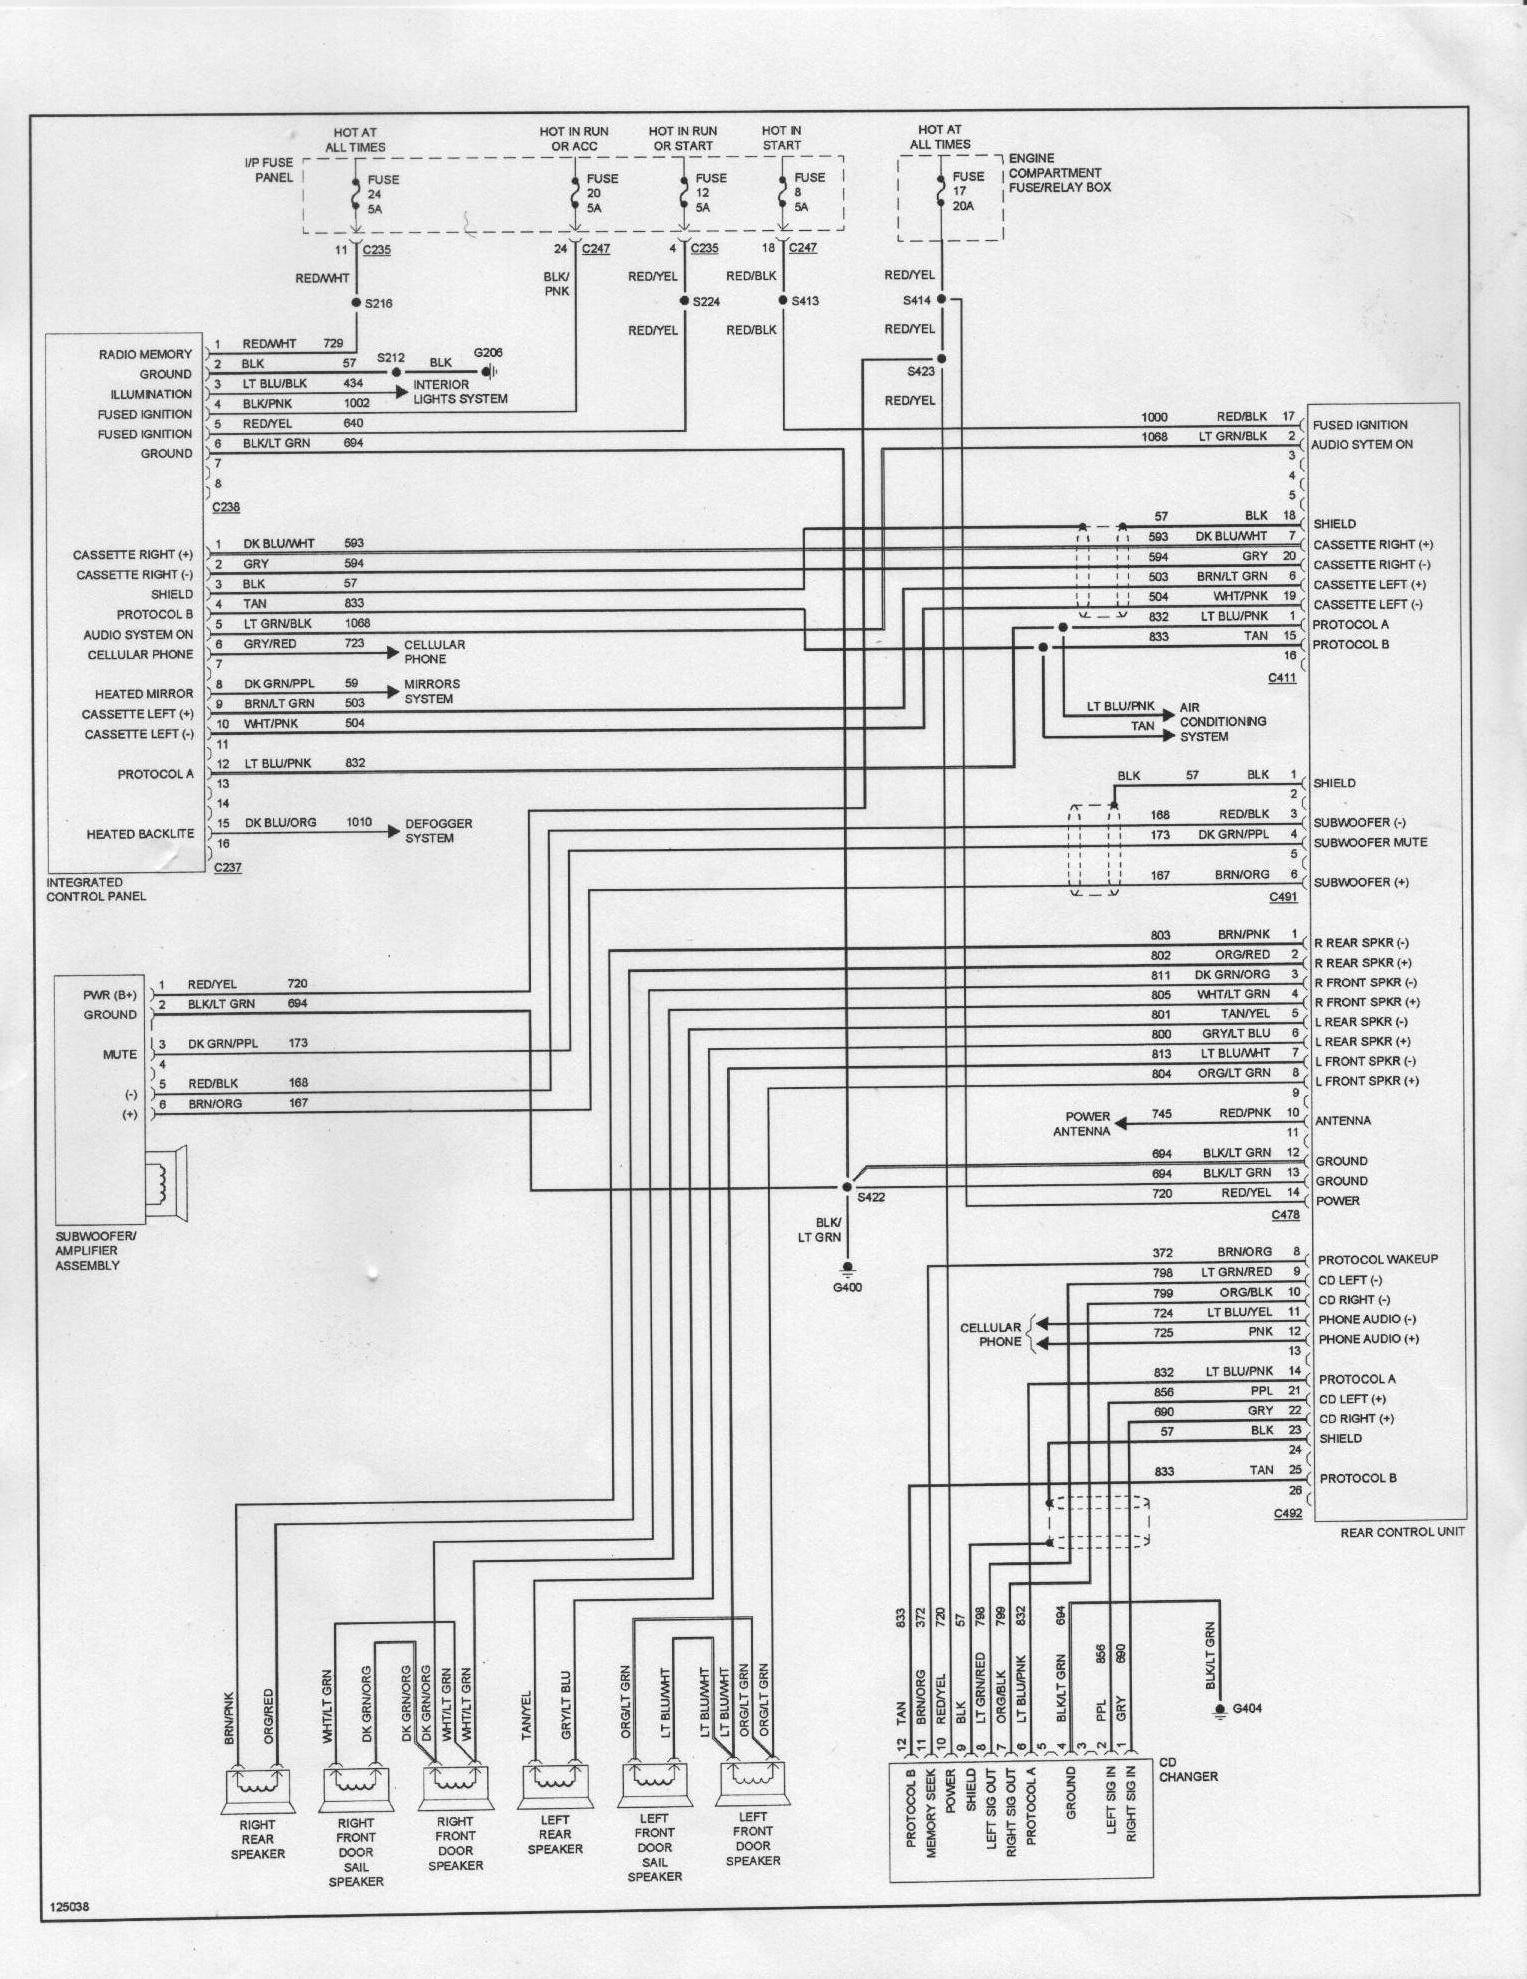 46509d1178551791 scosche orange wire _______ diagram96 2007 ford five hundred car stereo wiring diagram radiobuzz48 1999 Ford Taurus Wiring Schematic at virtualis.co